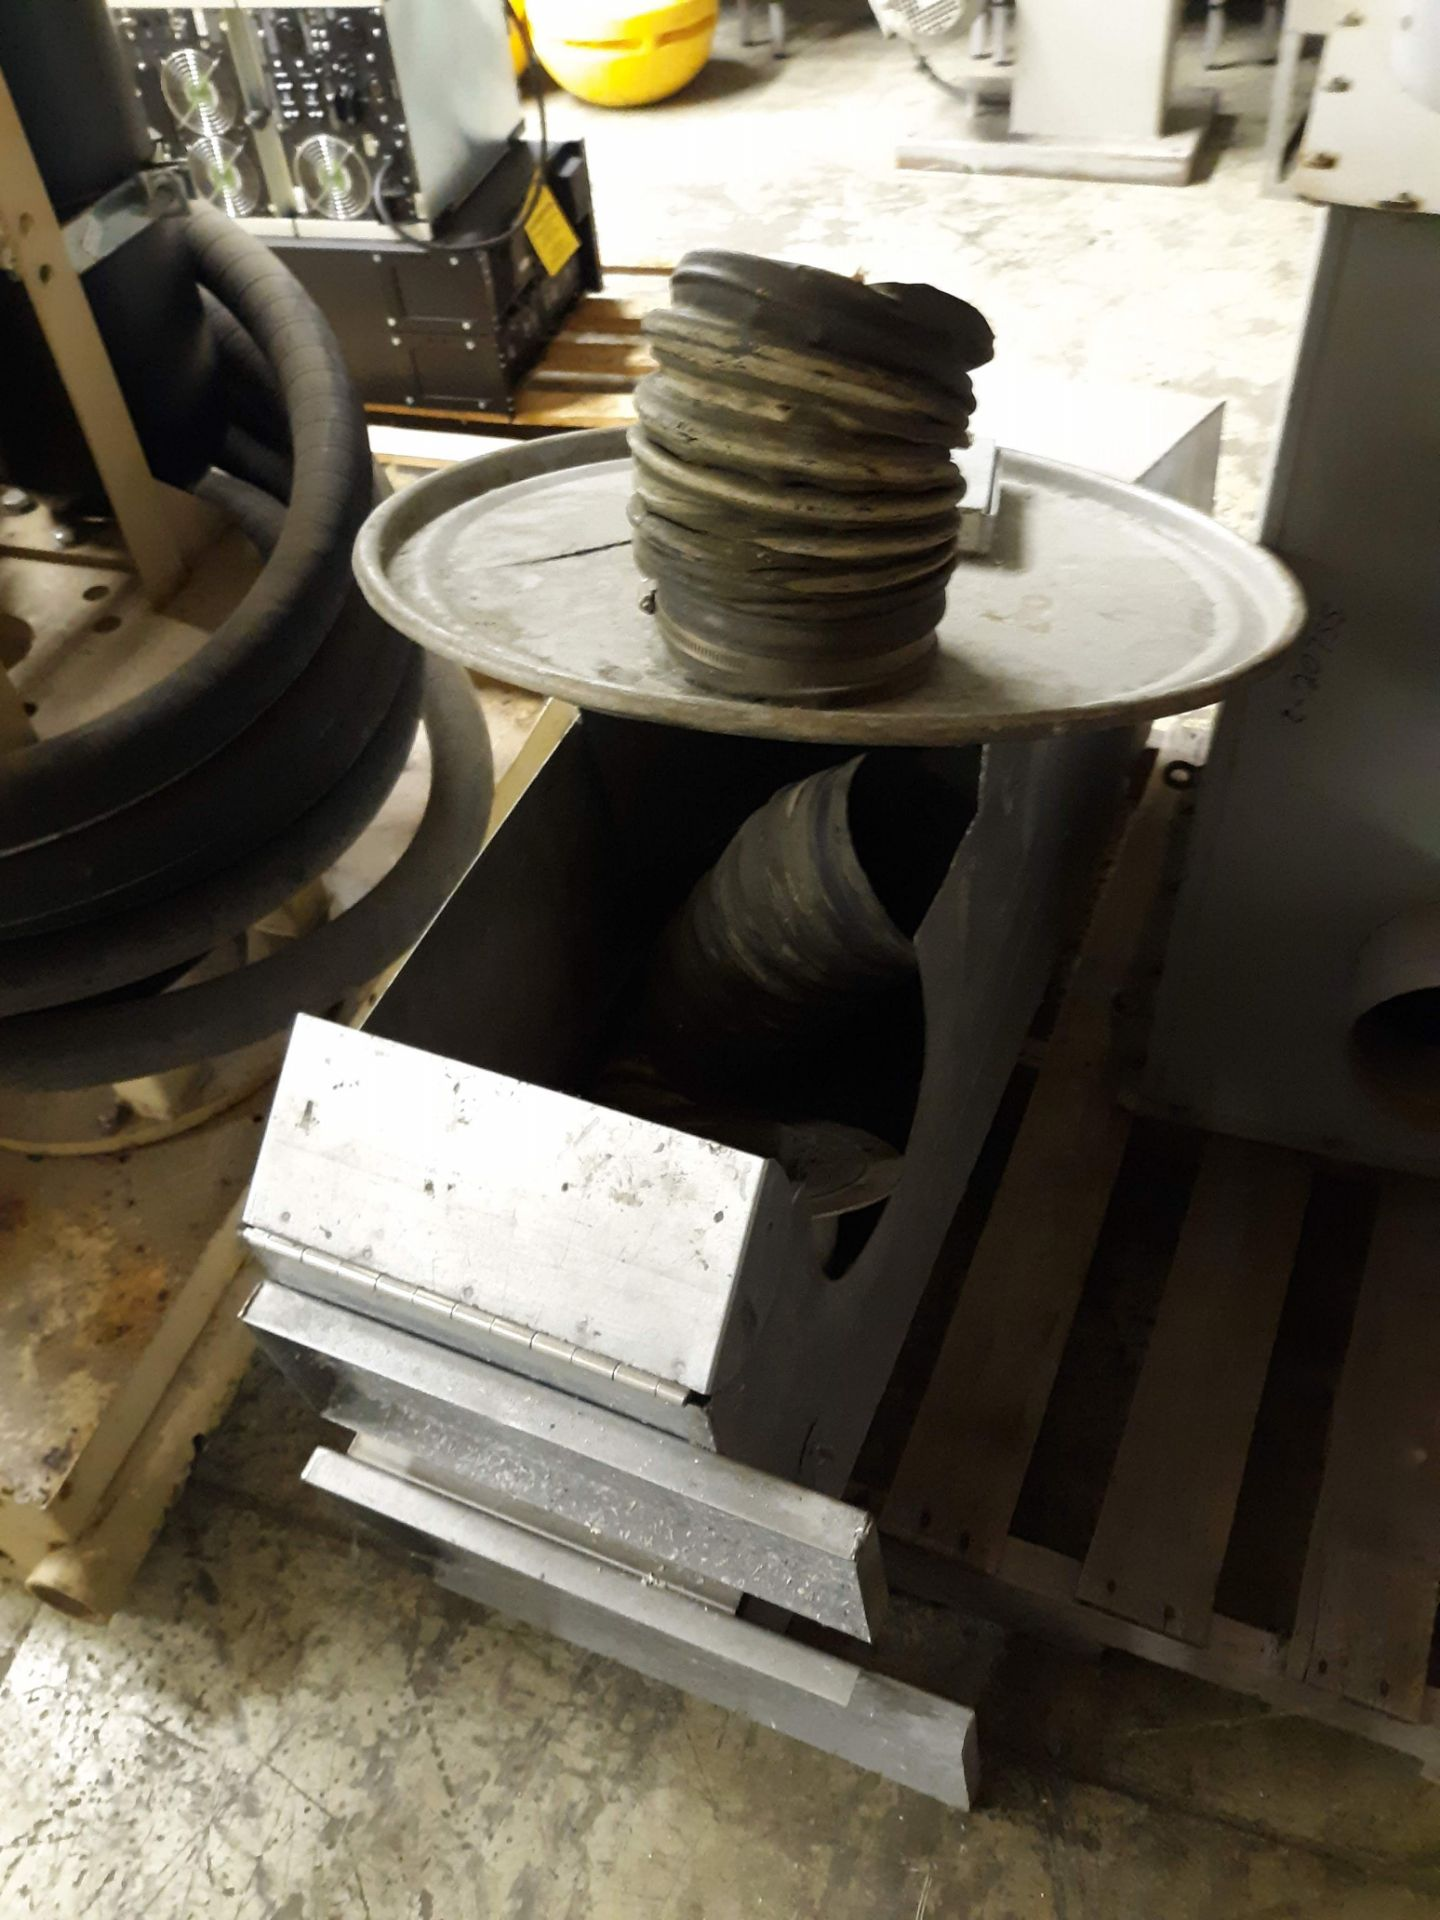 Lot 1232 - INDUSTRIAL DUST COLLECTOR PARTS(LOCATED AT: 433 COUNCIL DRIVE, FORT WAYNE, IN 46825)